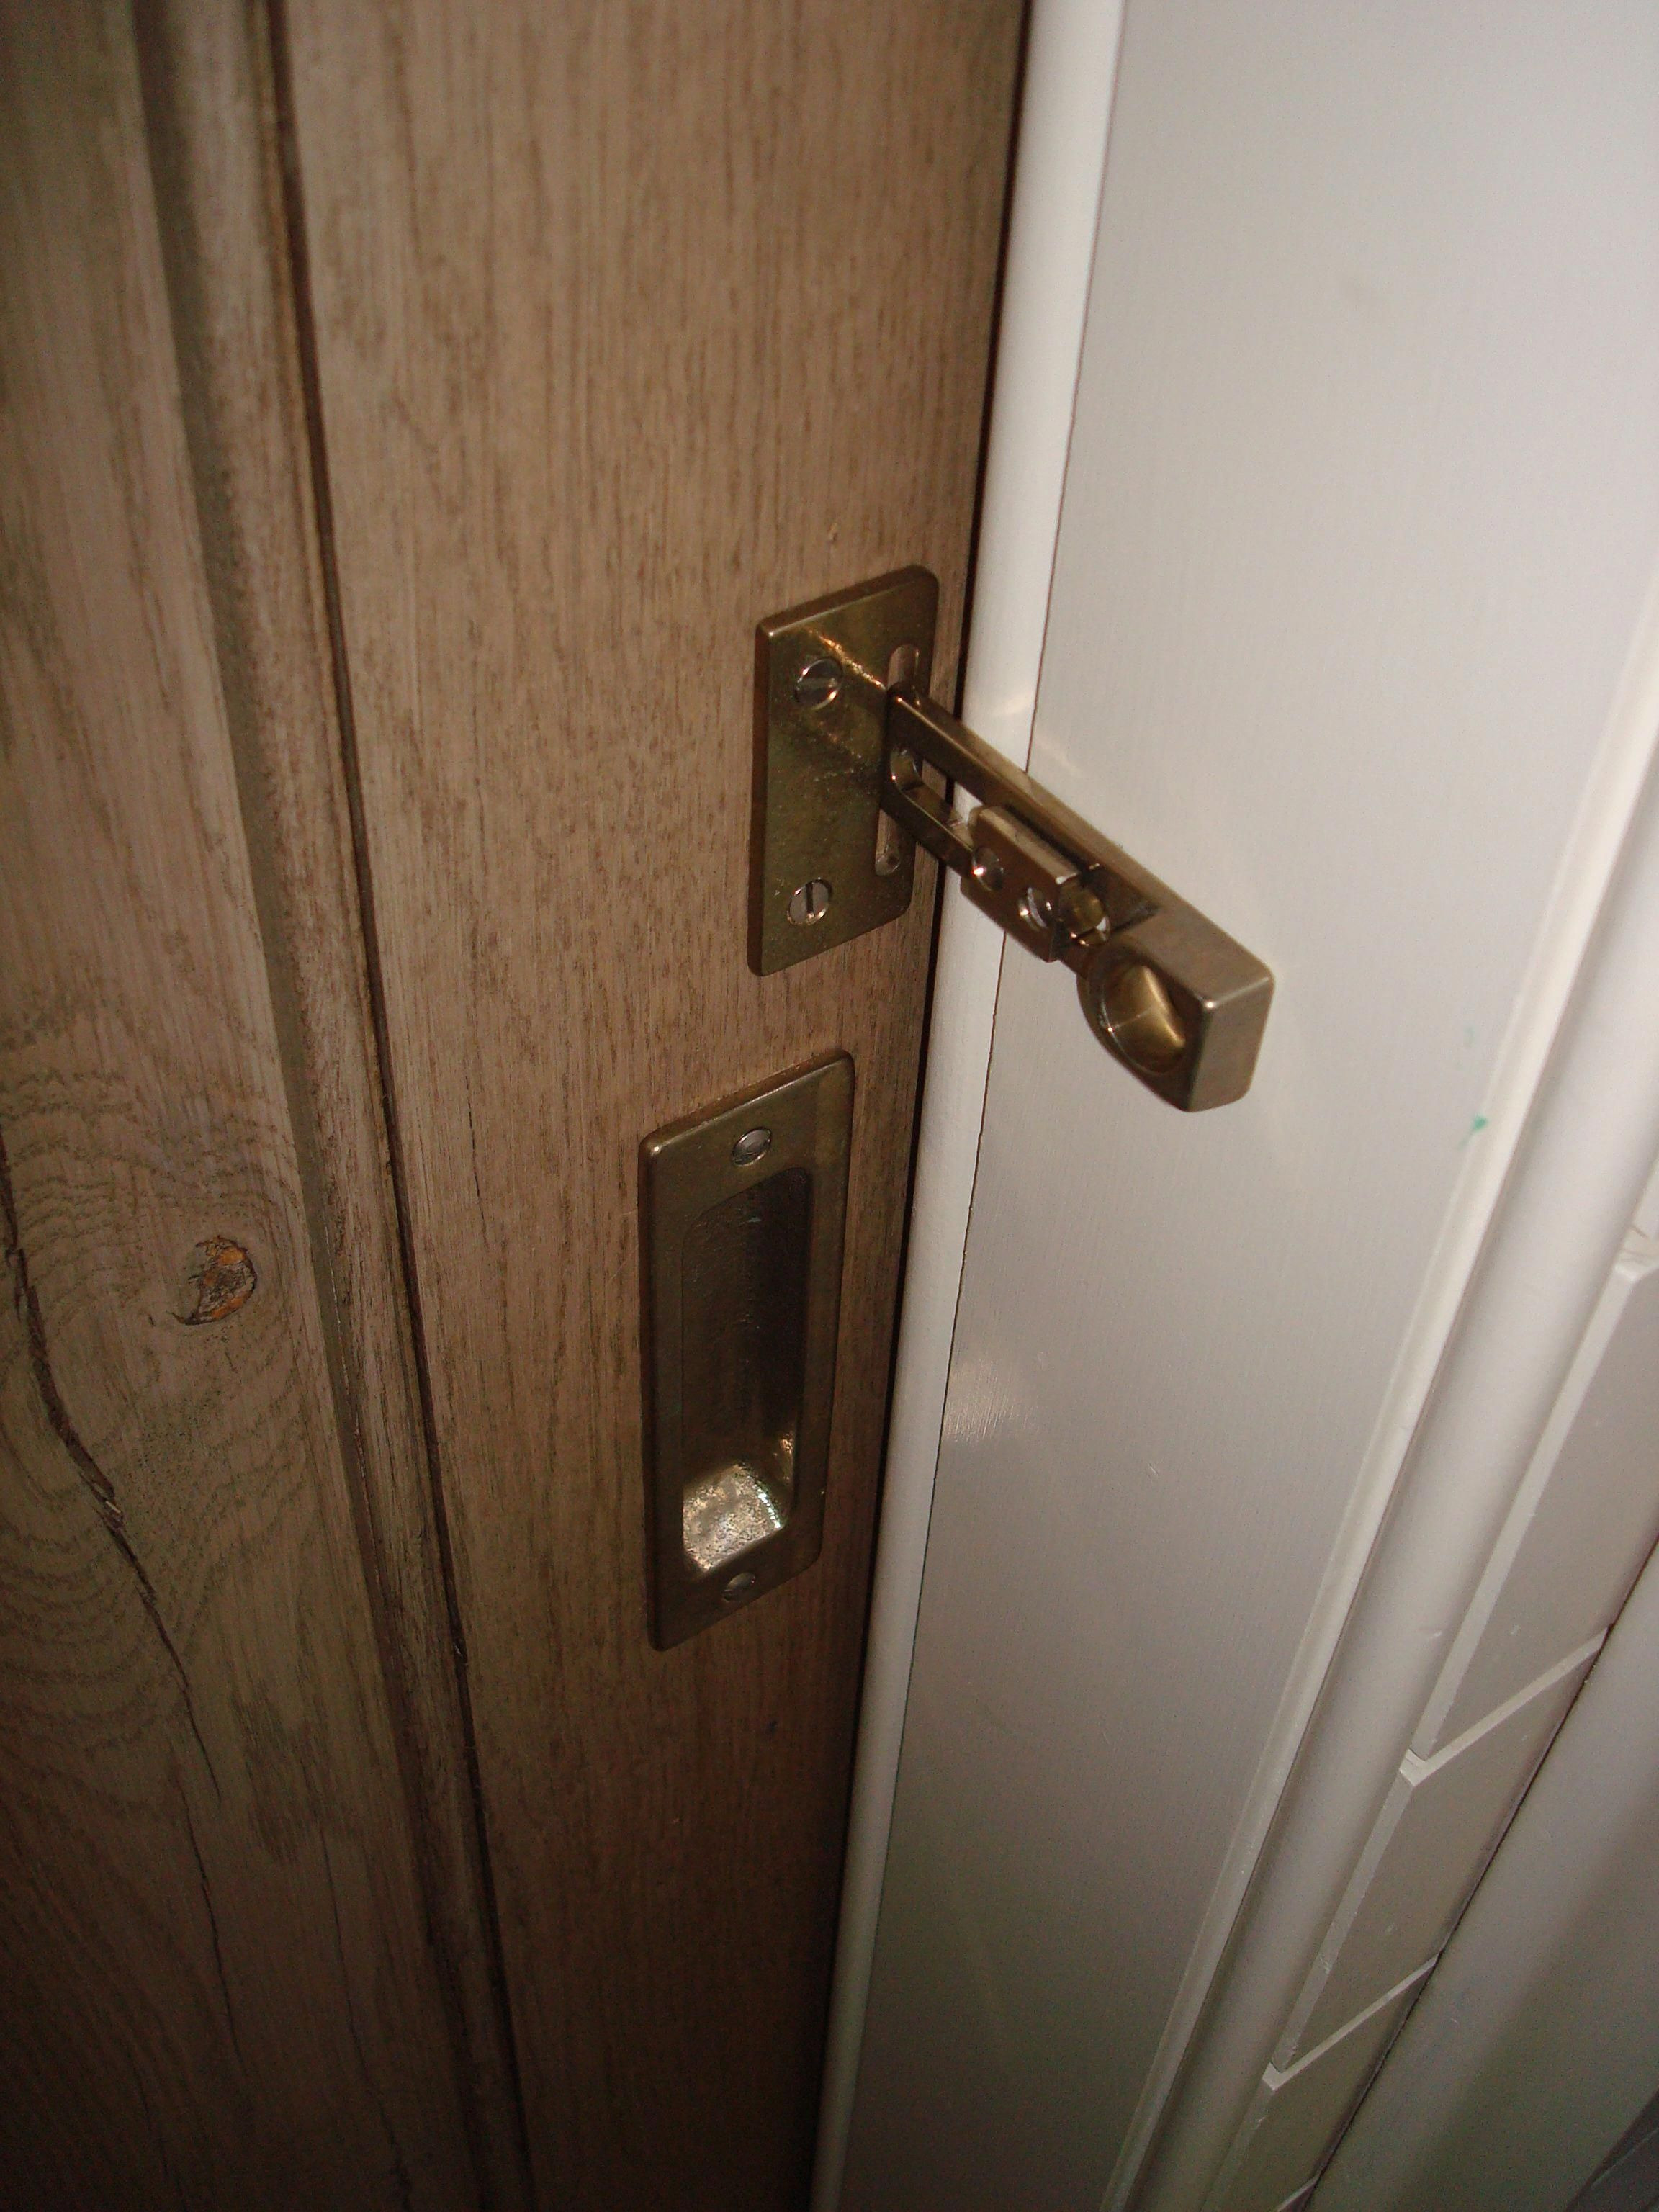 Sliding Cabinet Door Lock Unique Locks for Sliding Barn Doors Reface and or Change Out Your